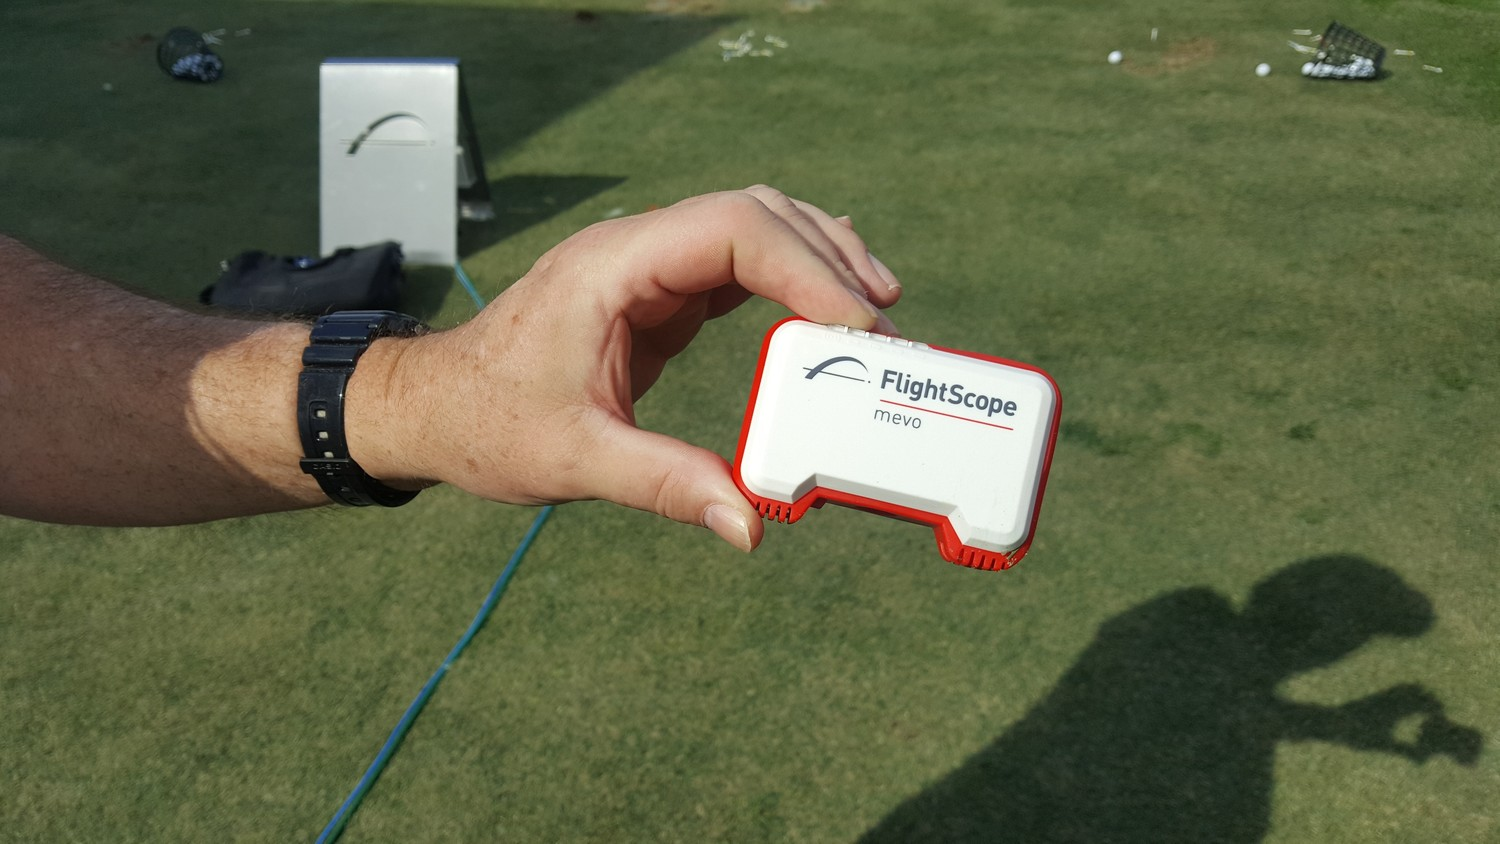 mevo by FlightScope is a new, modestly priced ball flight tracker that provides information on shots.